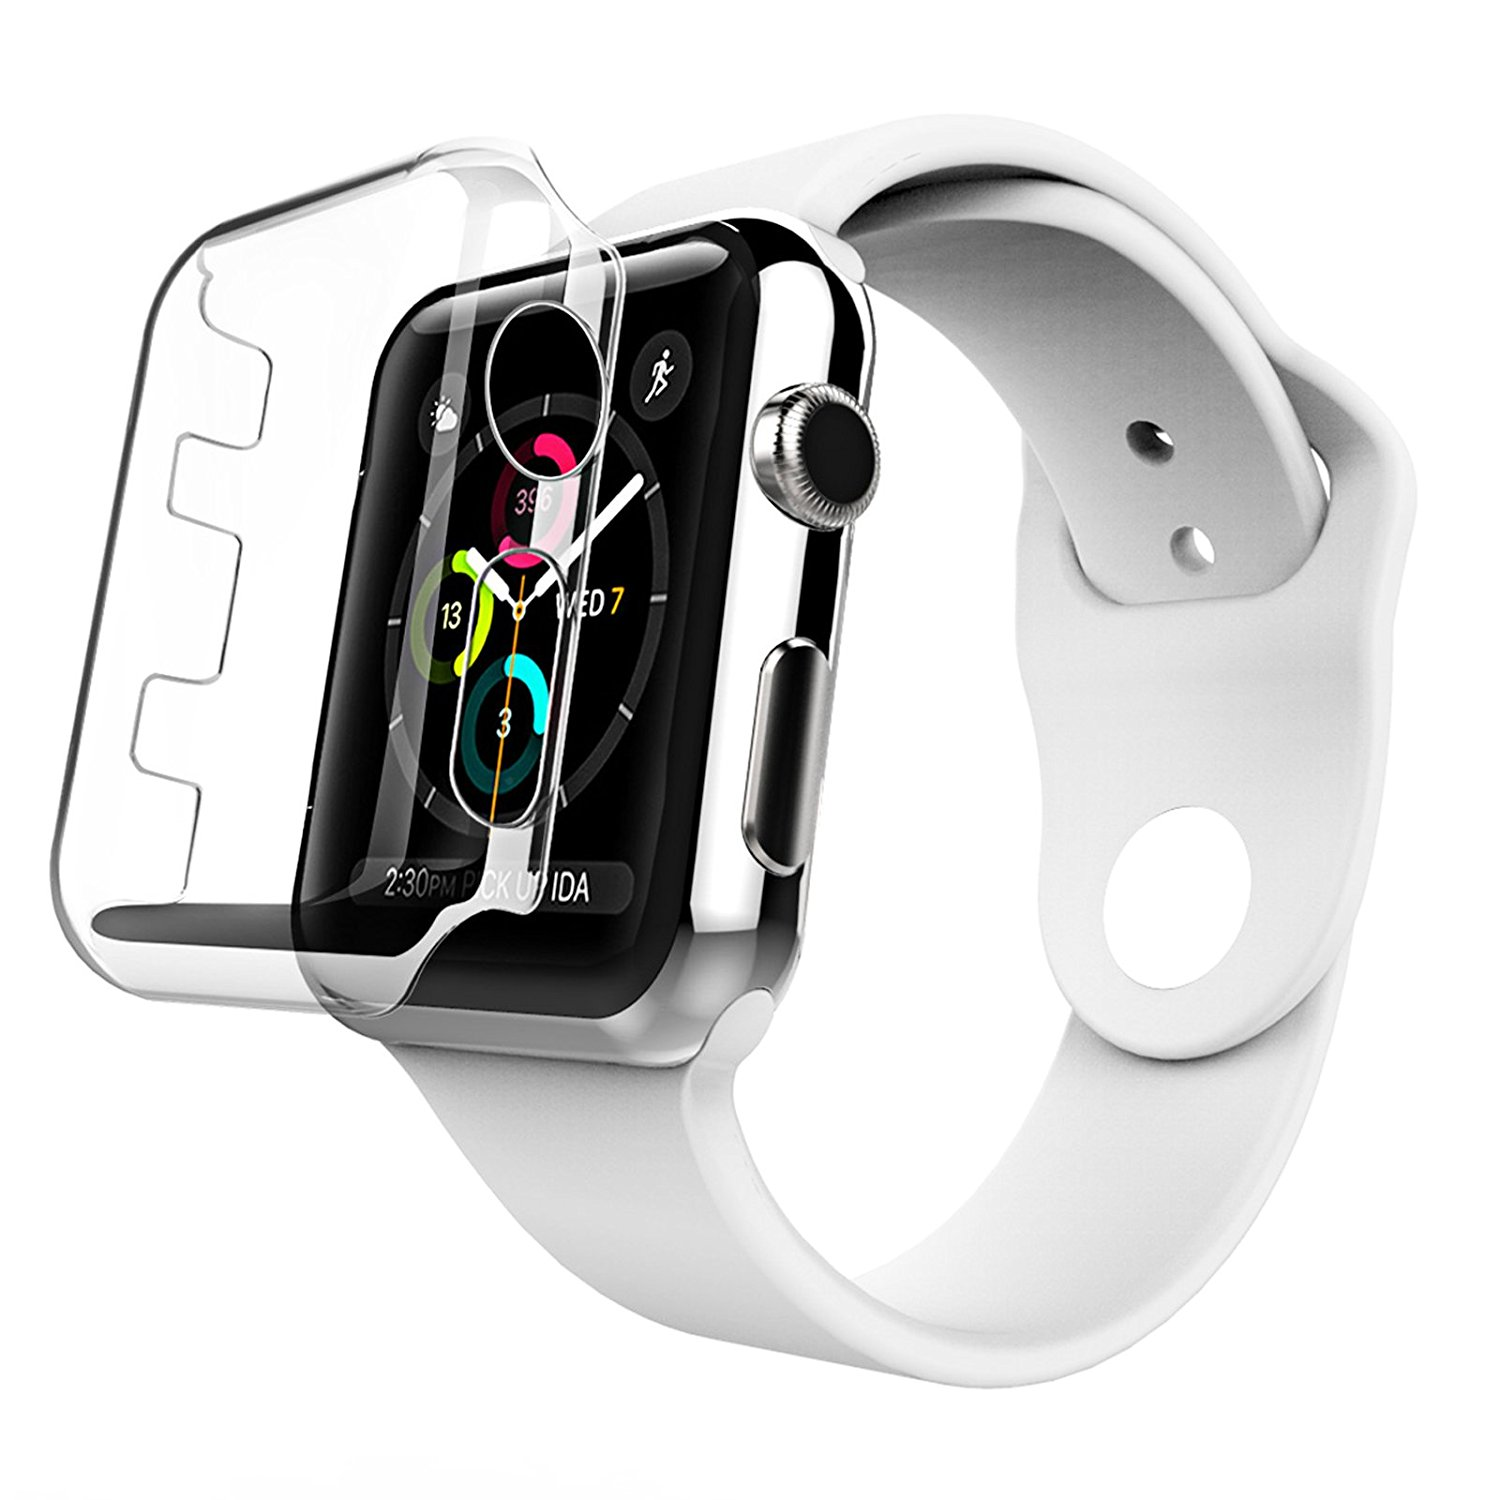 Askuncledave Limited Black Xl Apple Watch Sport Band 160mm To 245mm Series 2 42mm Steel W Buy This Even If It States Two Only Stainless 1 Is Slightly Bigger Than The Aluminum